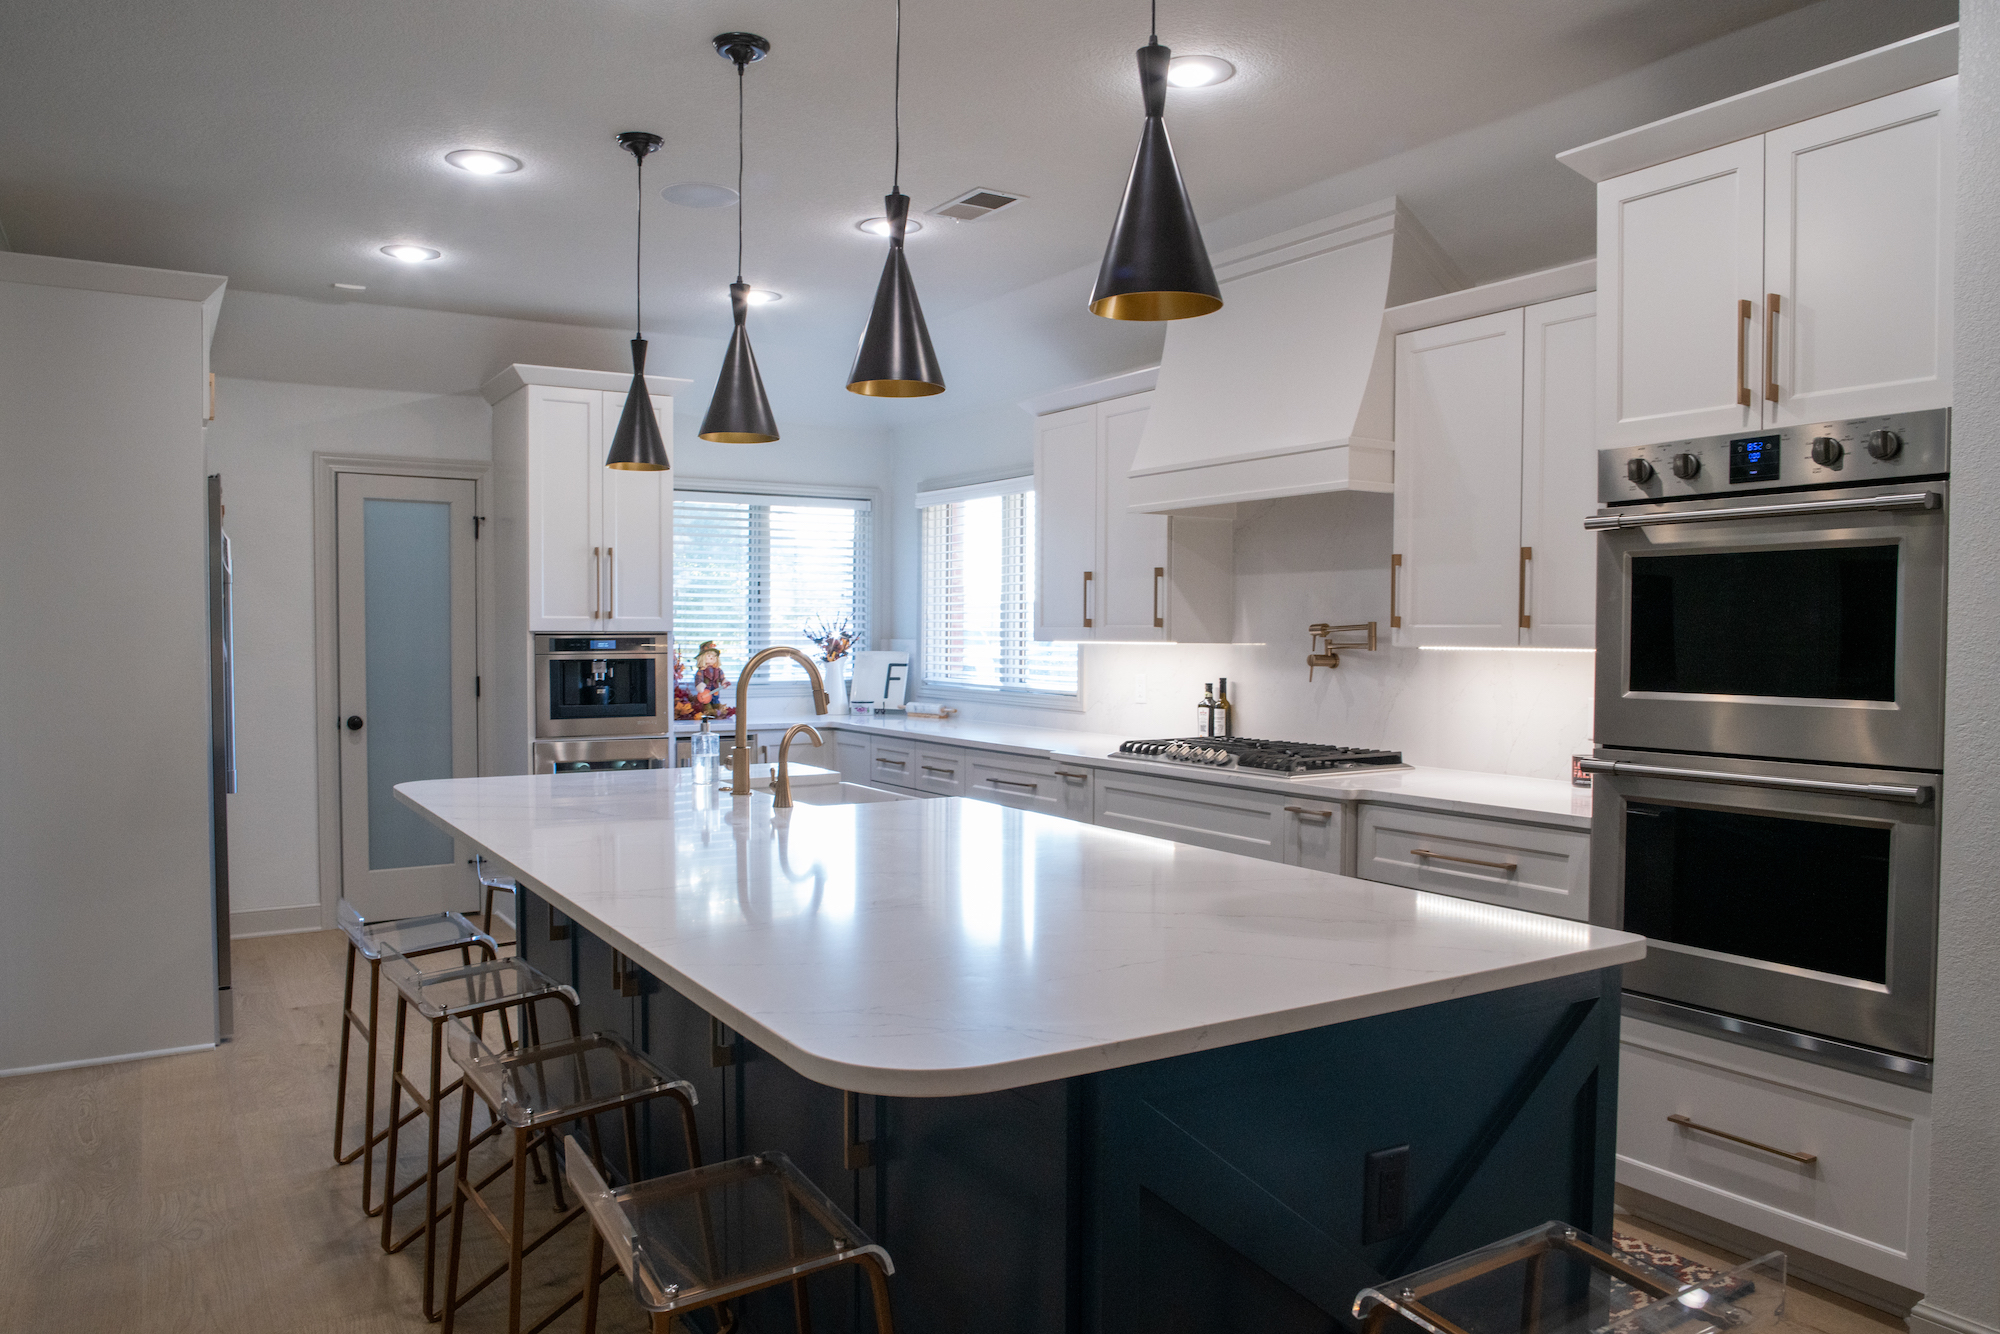 Replacing Countertops vs. Restoring: When to Make the Choice